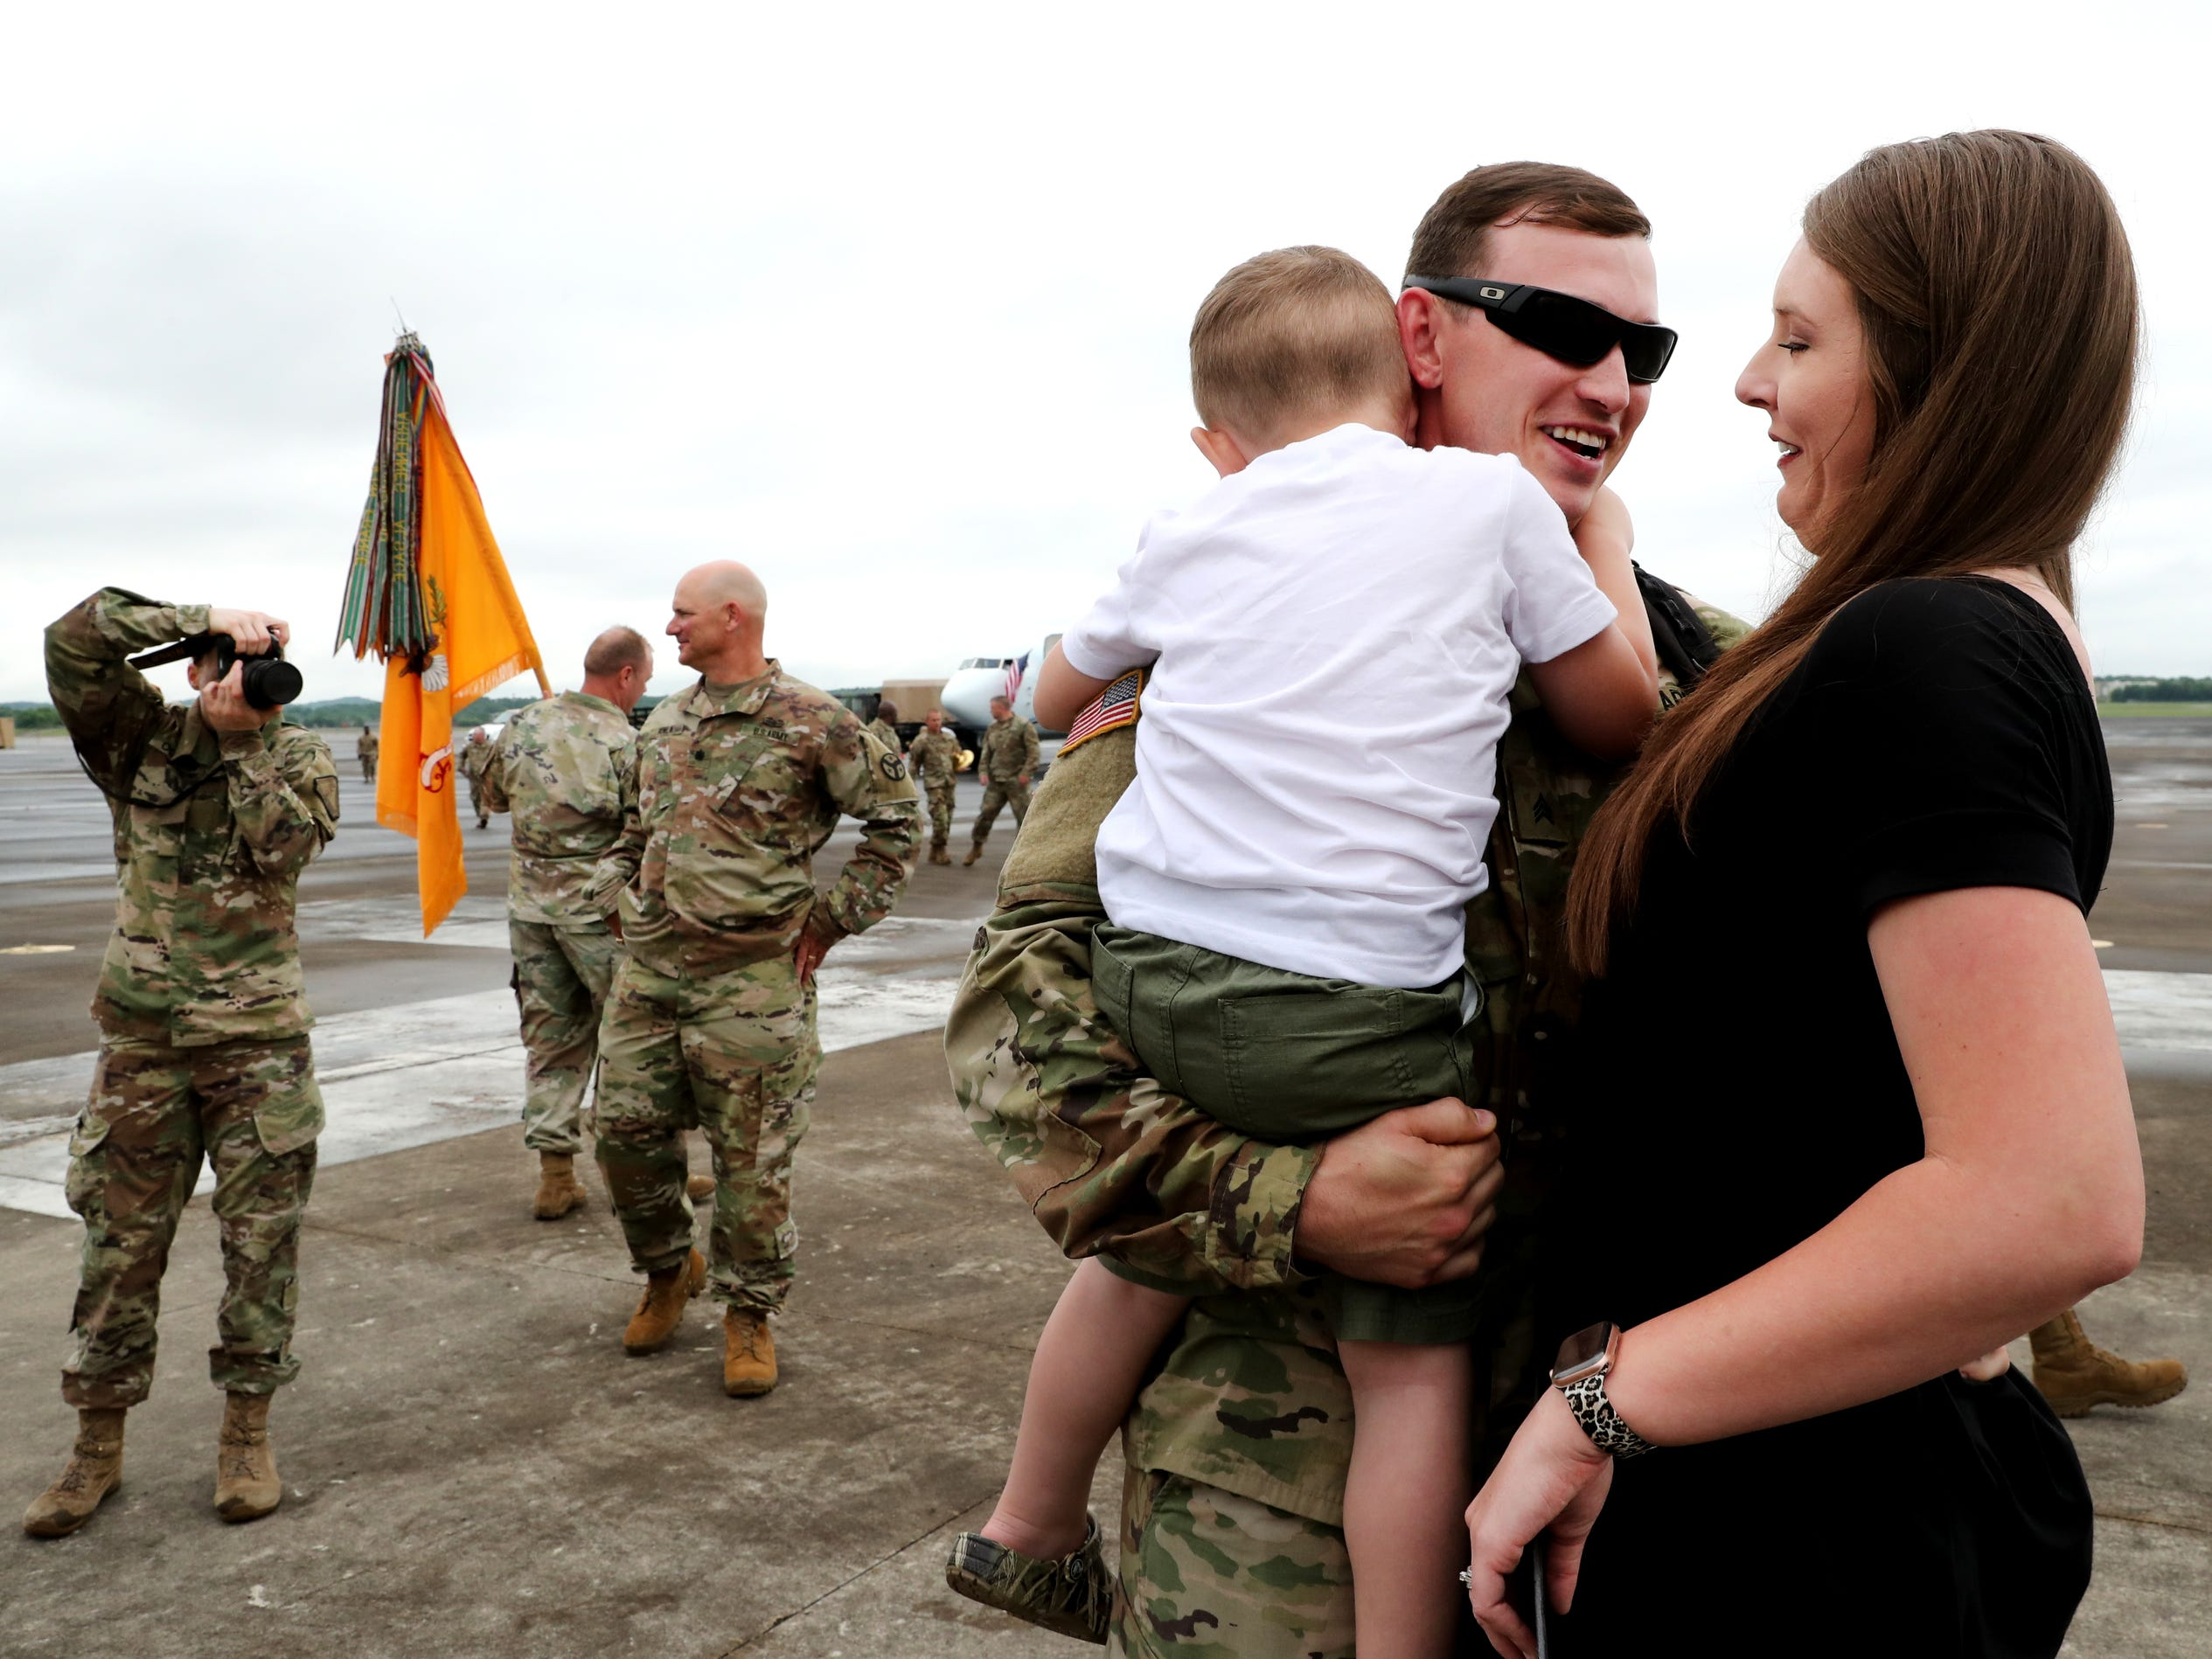 Sgt. Cody Chipman, with the 278th ACR holds his son Camden Chipman, 3 and greets his wife Kristin Chipman as he returns to the Volunteer Training Site in Smyrna, after a 9 month overseas deployment on Thursday, May 9, 2019.